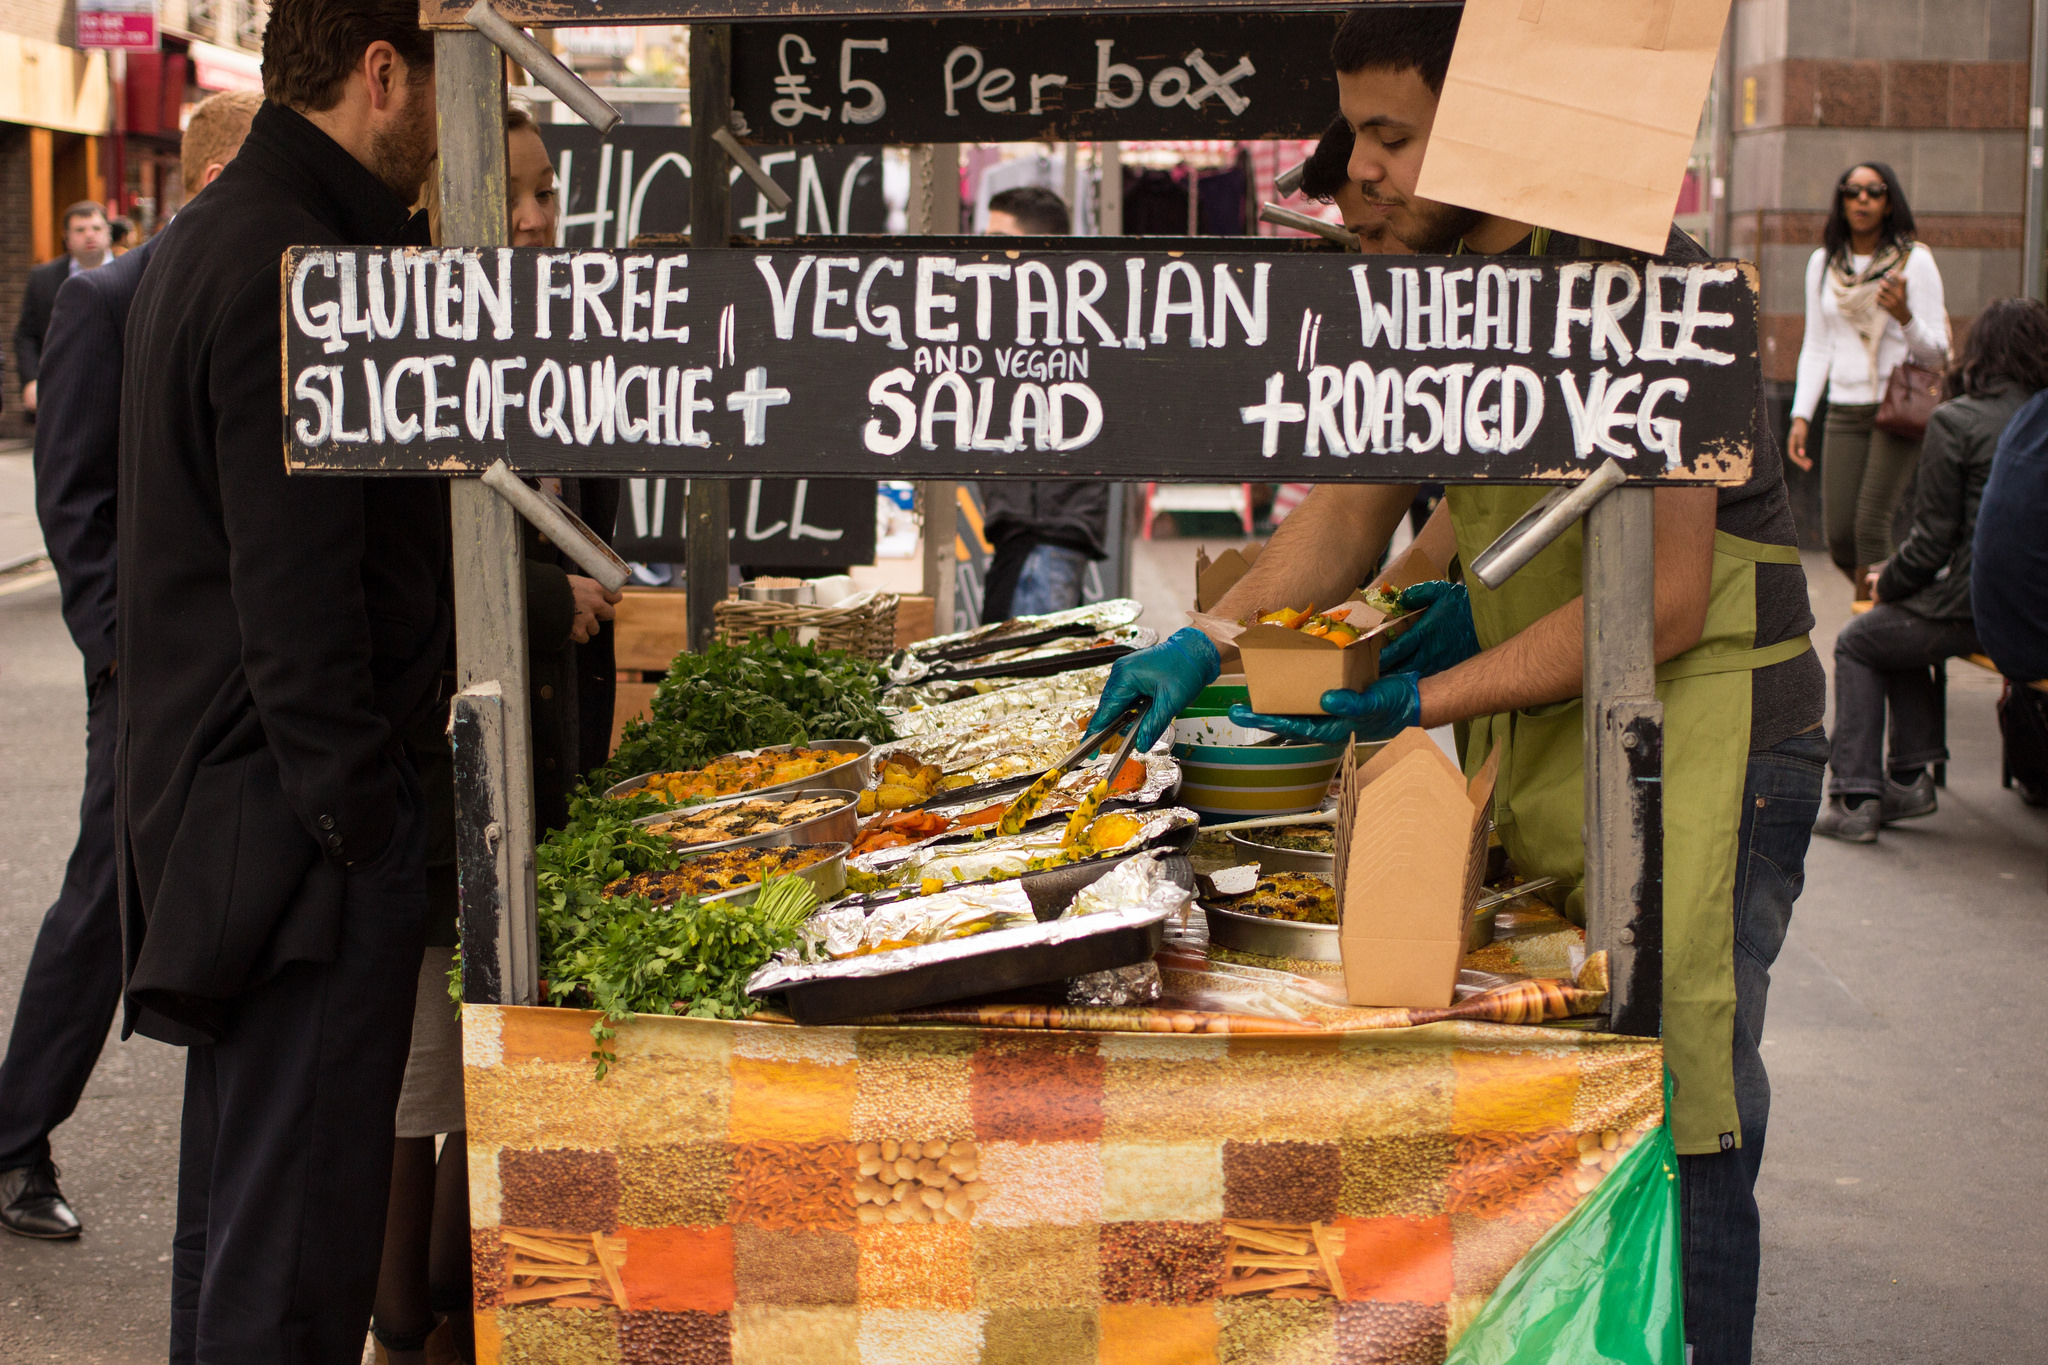 Food Stall at Leather Lane Market | © Jim Le / flickr